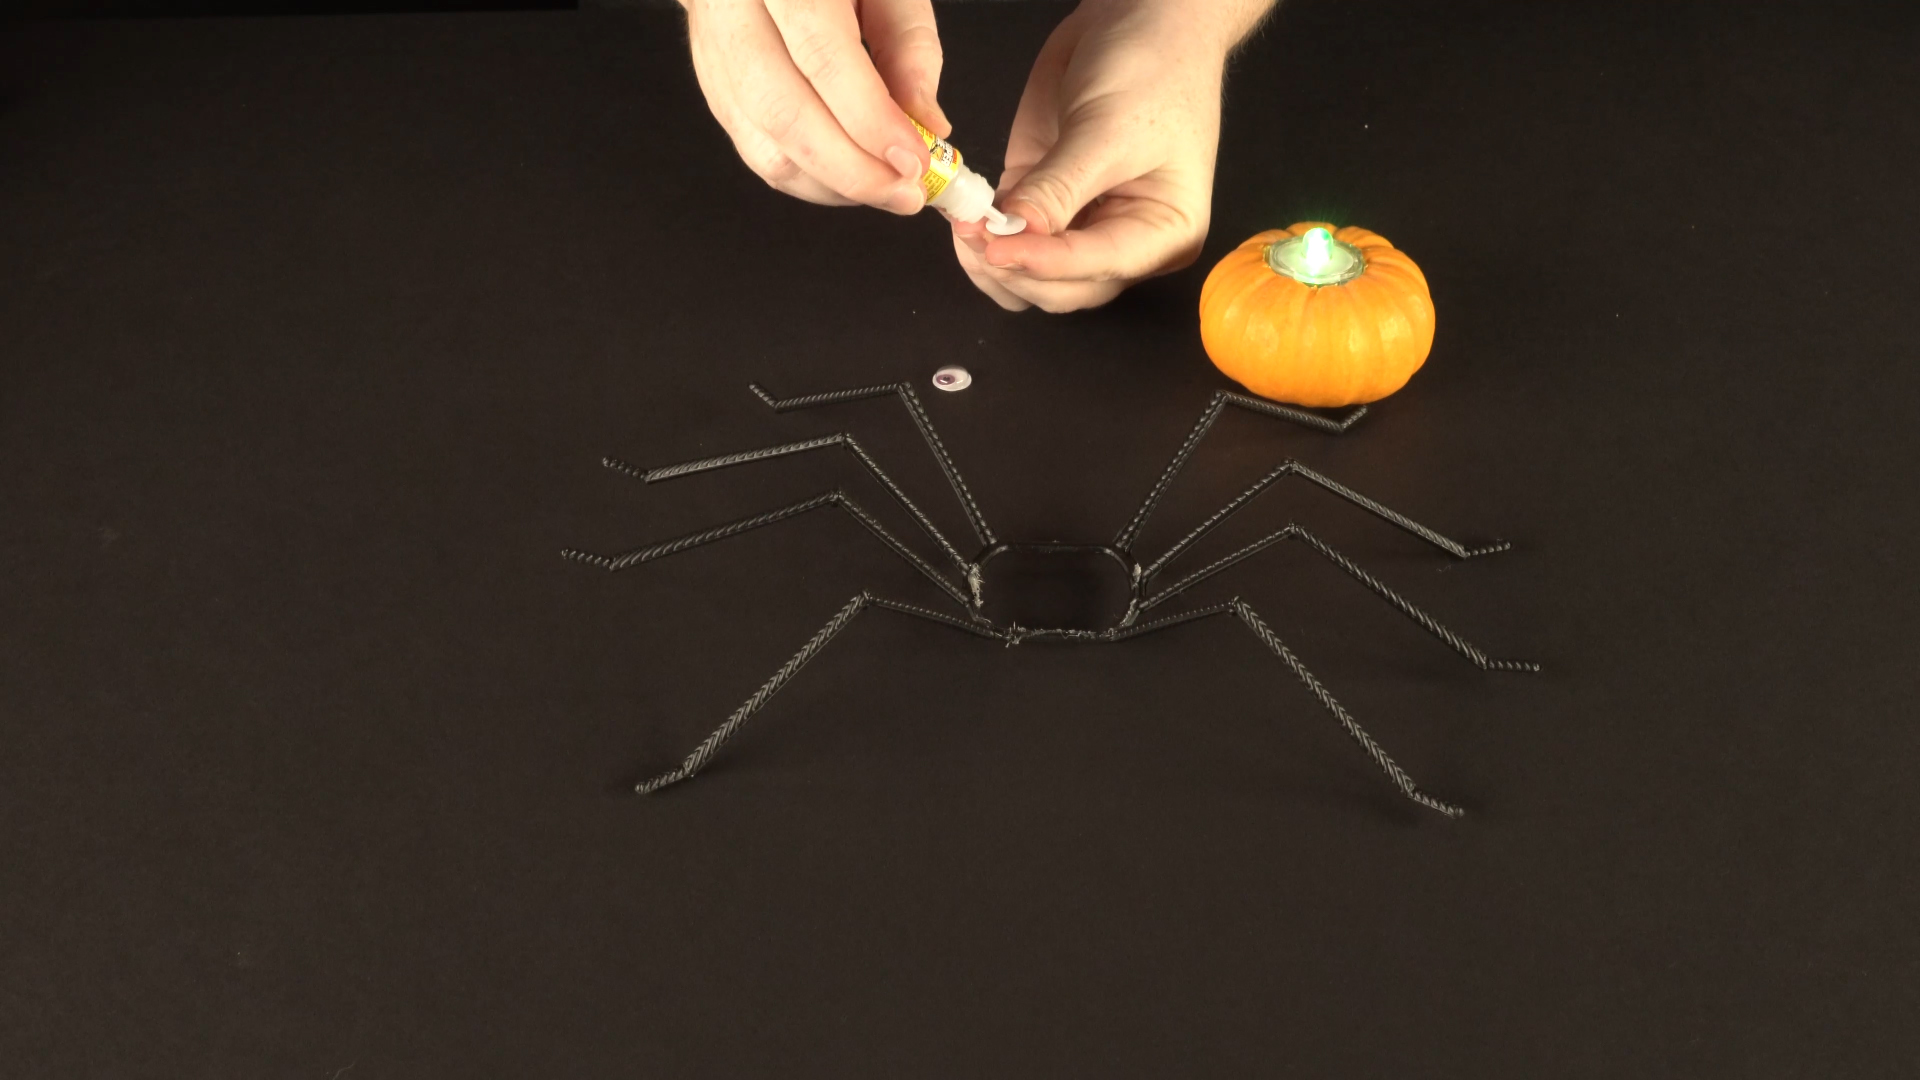 Halloween crafts with color-changing led tea lights - spider step 4